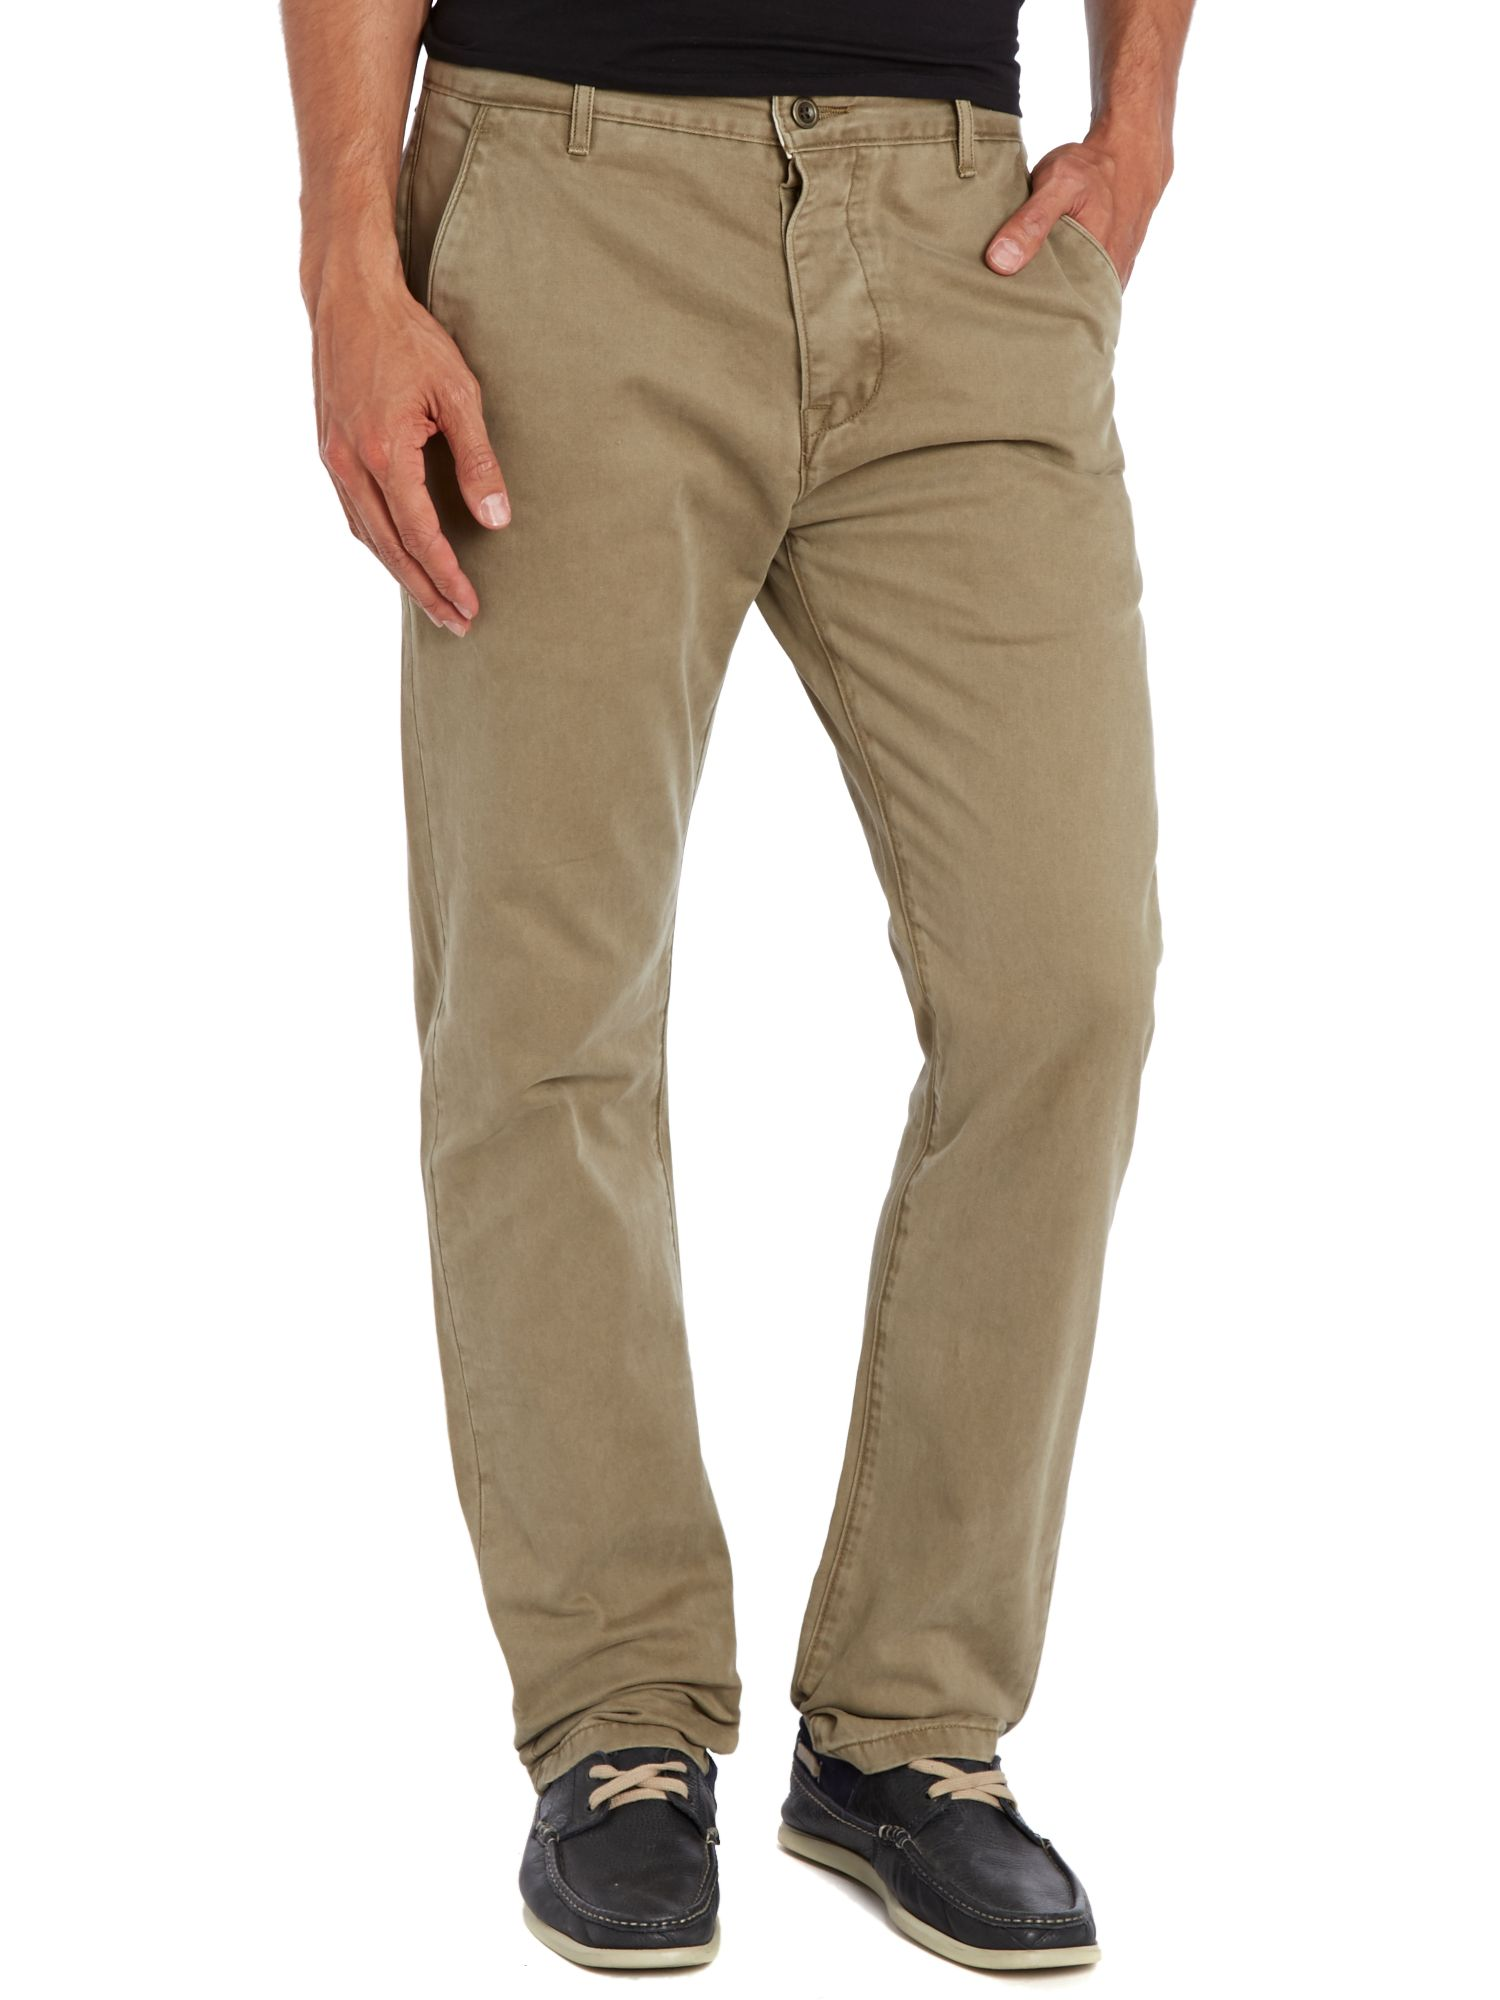 Standard fit straight leg chino